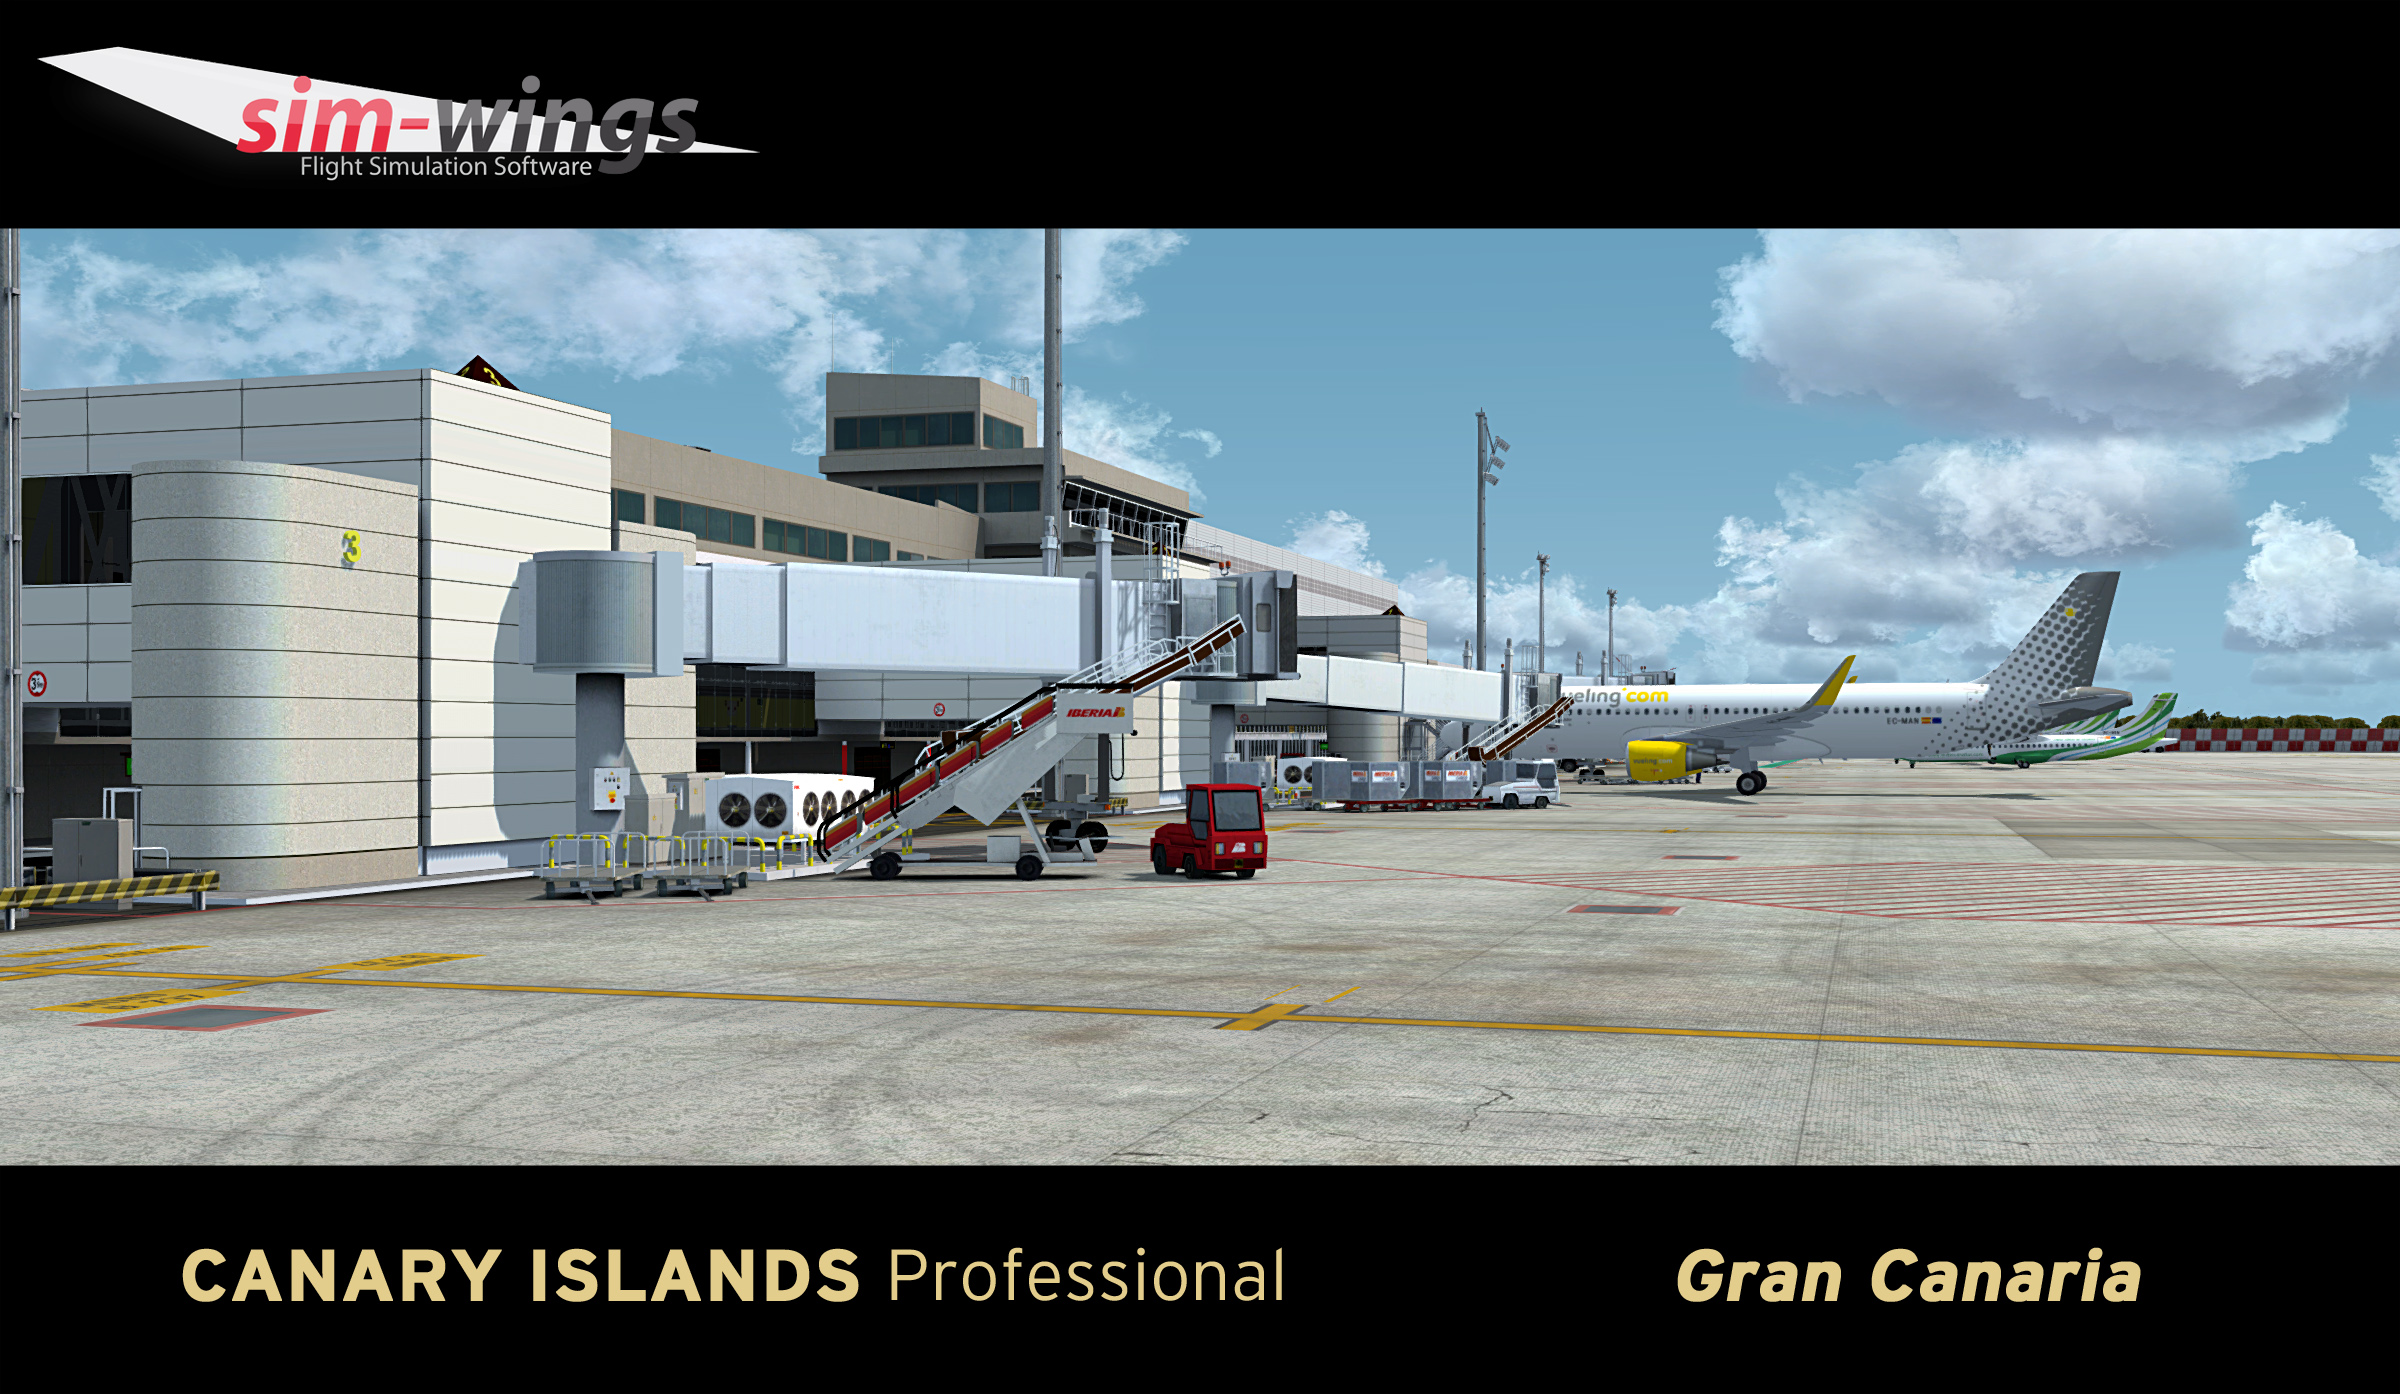 Sim-Wings - Canary Islands professional - Gran Canaria for P3Dv4